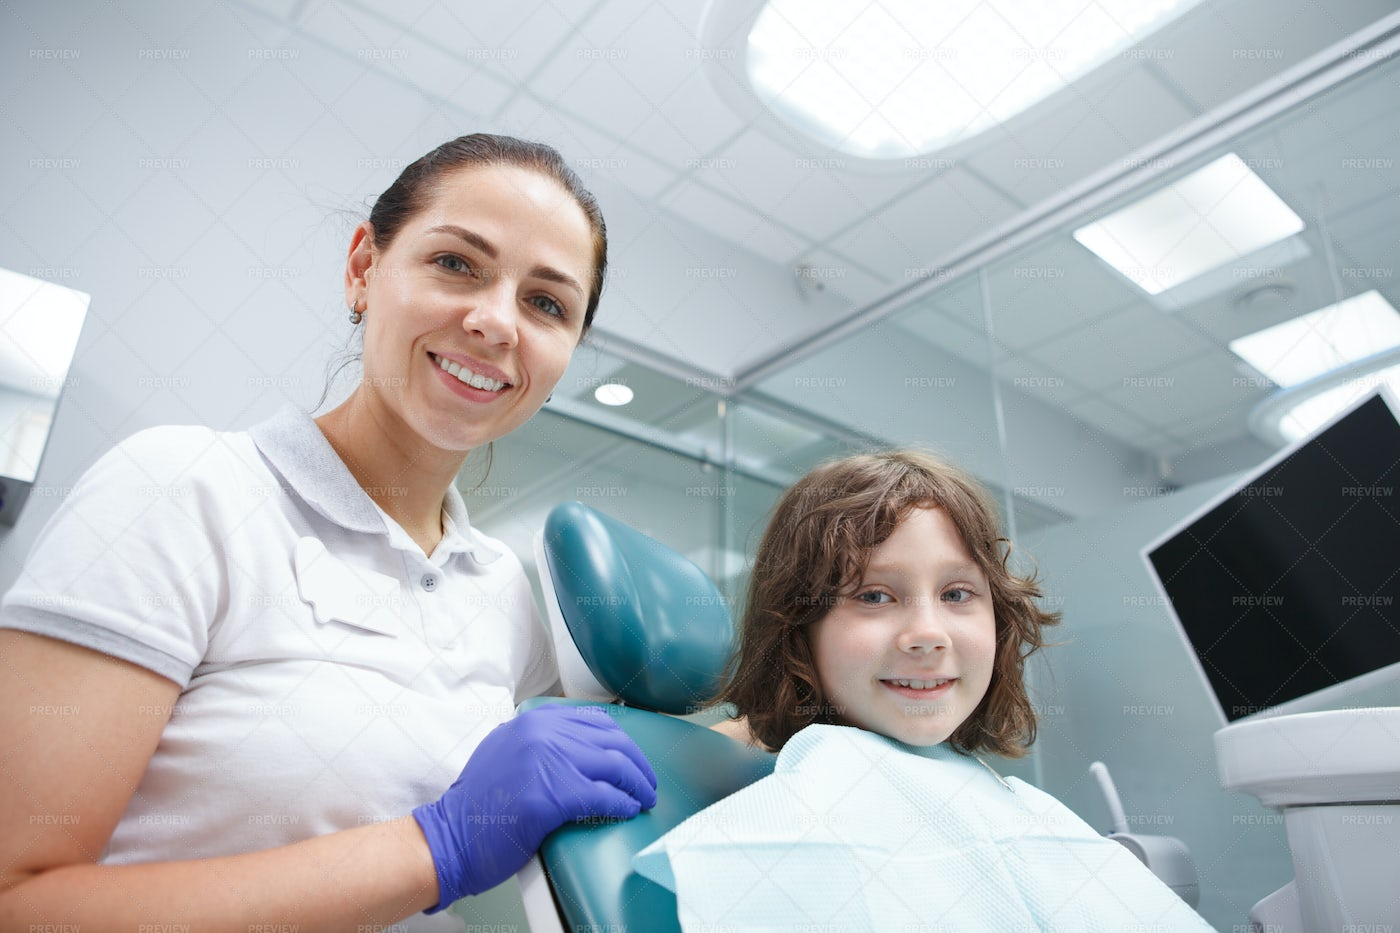 Dentist And Young Patient: Stock Photos